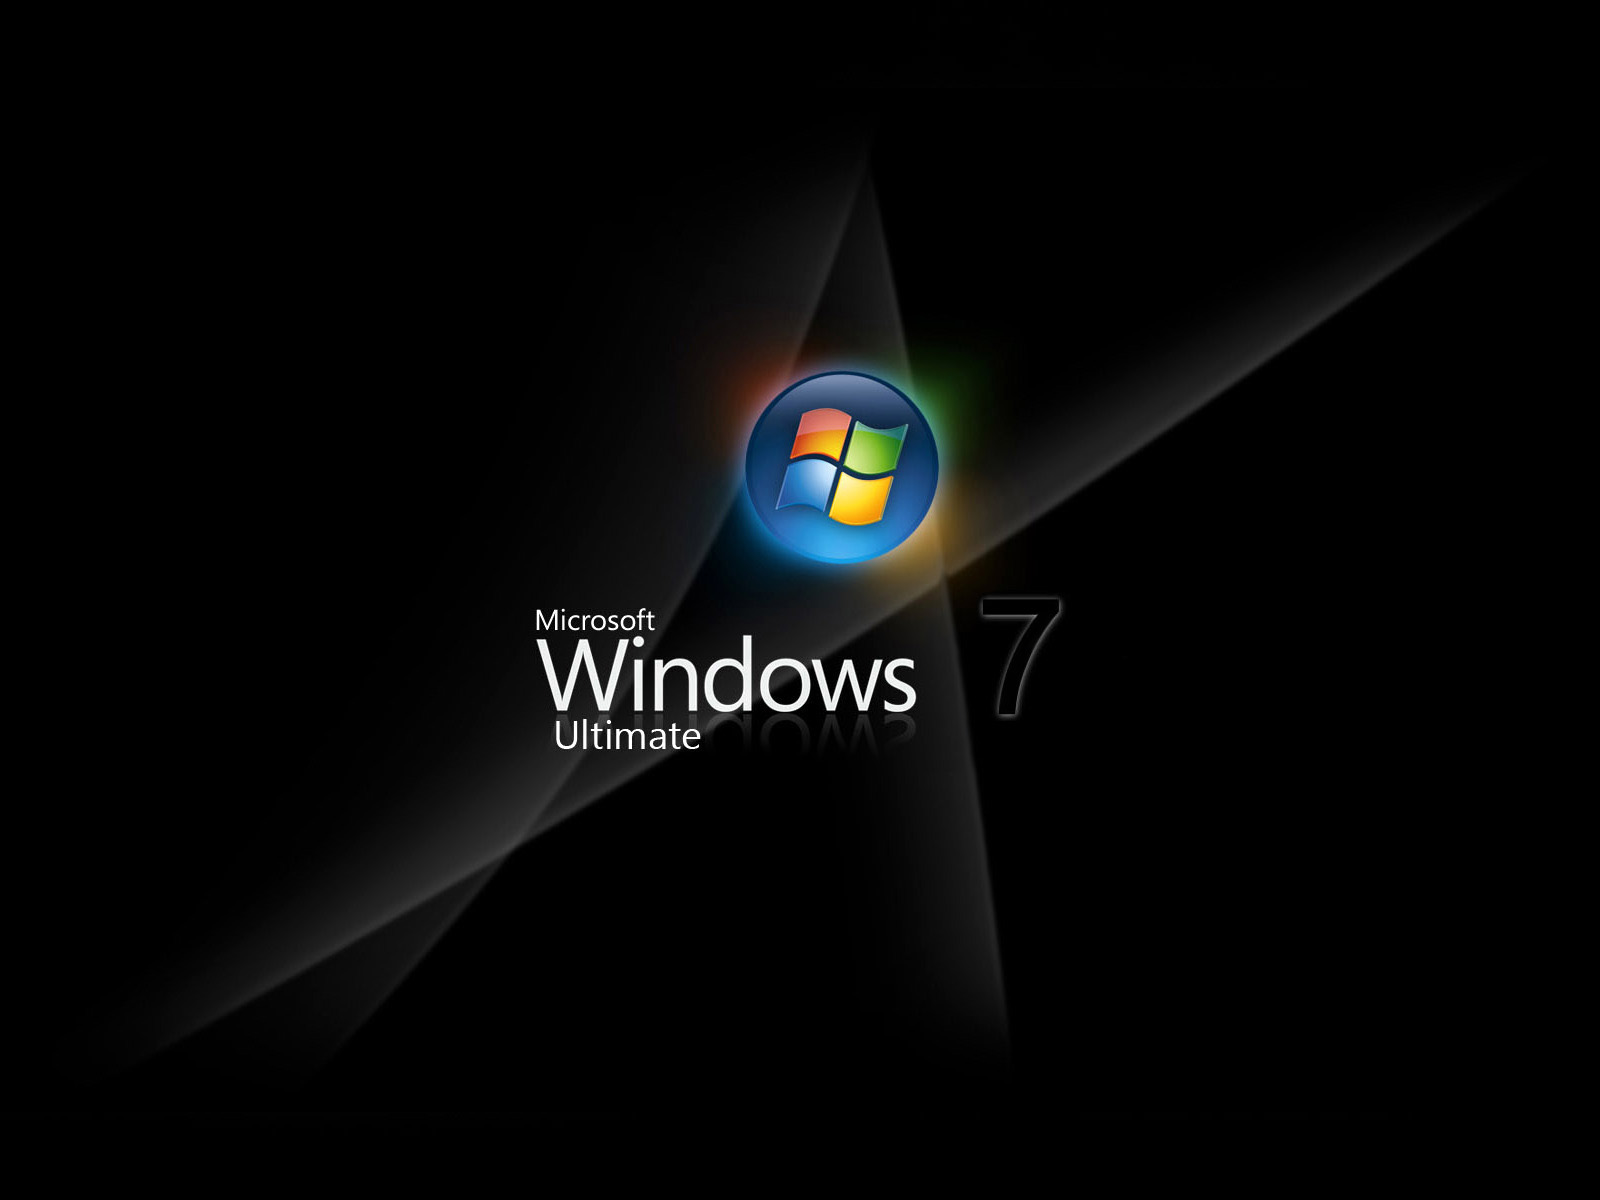 apple desktop wallpaper windows 7 - photo #42